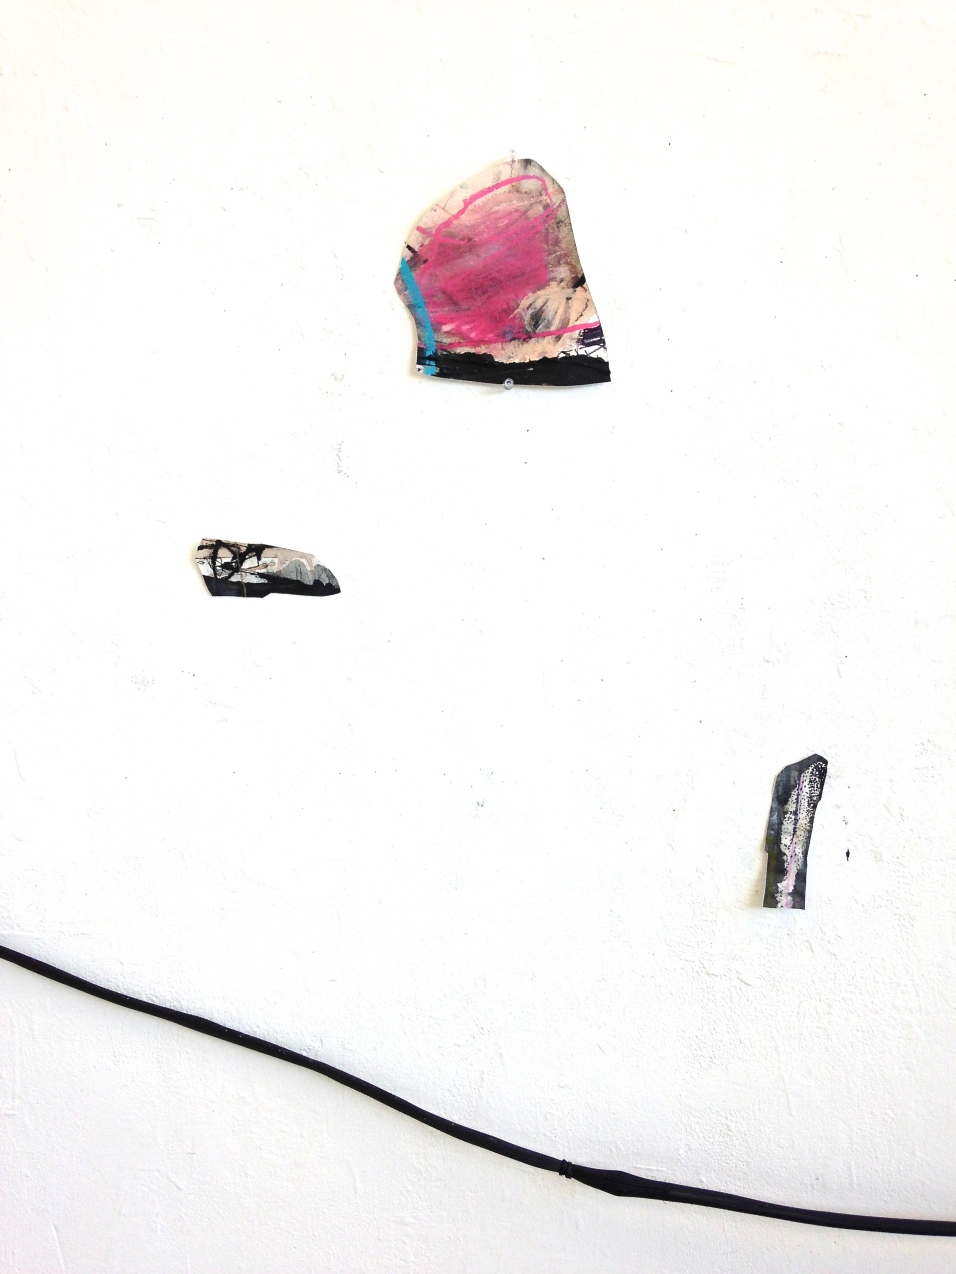 Landscapes - electrical cord and mixed media on papers - dimensions variable - 2014 (detail)